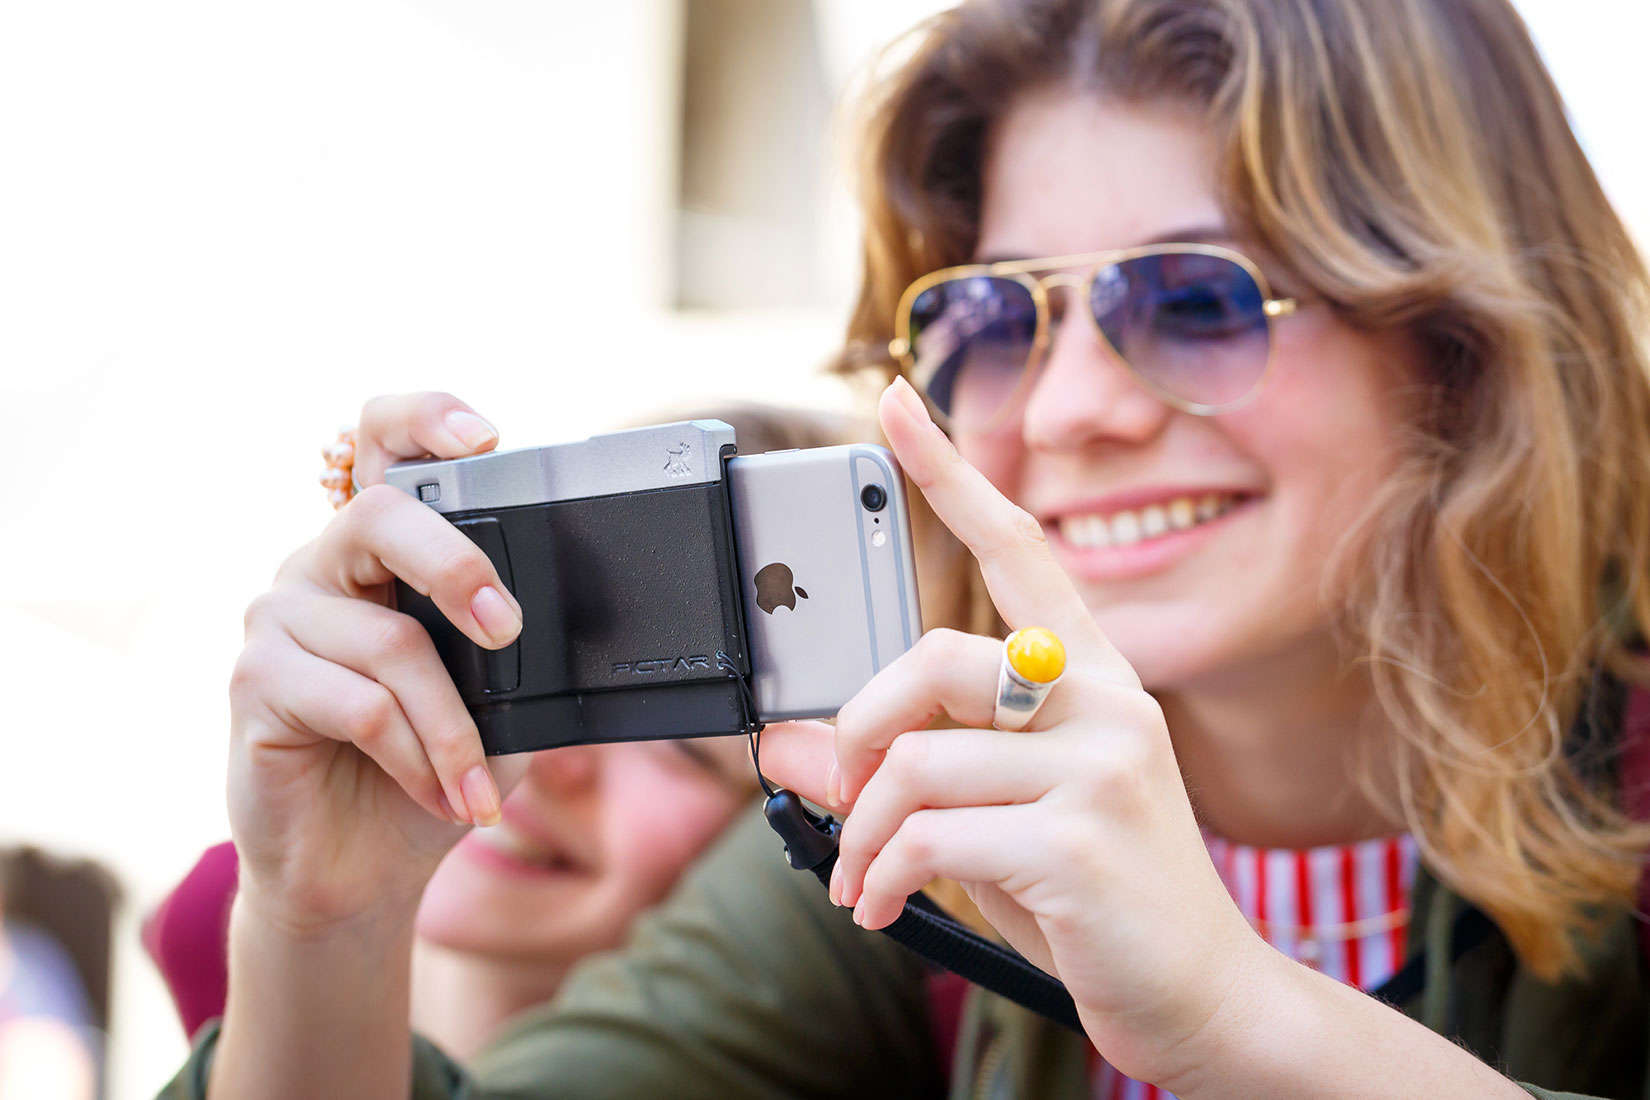 Pictar eliminates the worry of dropping your iPhone while making pictures.